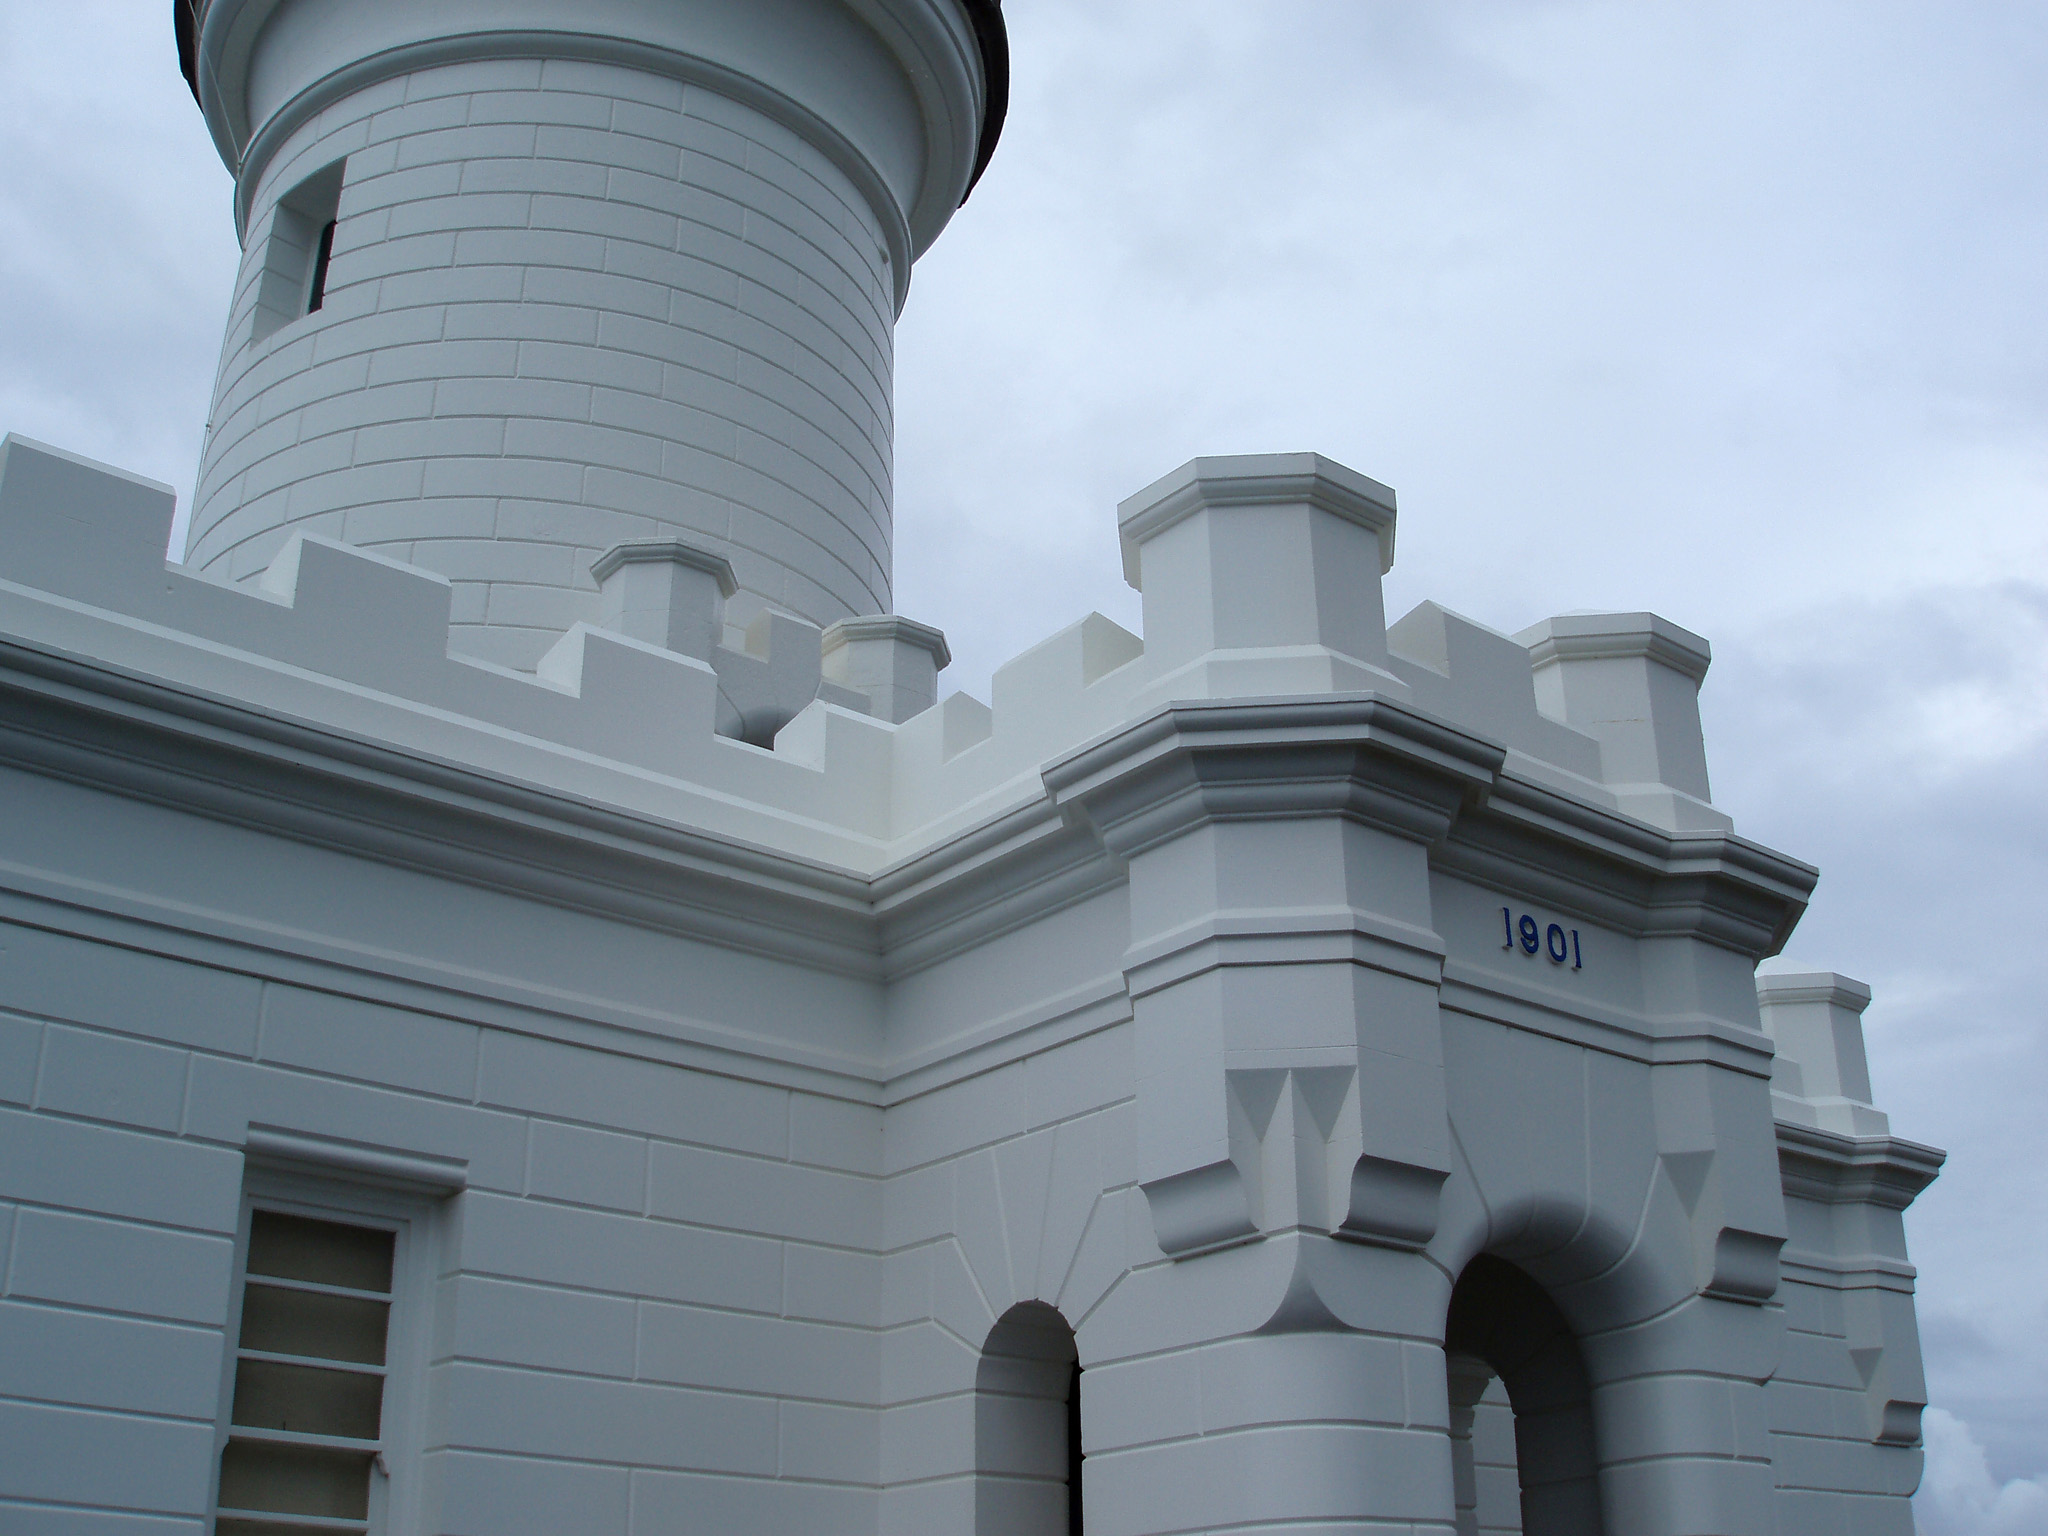 Close up Vintage White Byron Bay Lighthouse Structure on Lighter Blue Gray Sky Background.